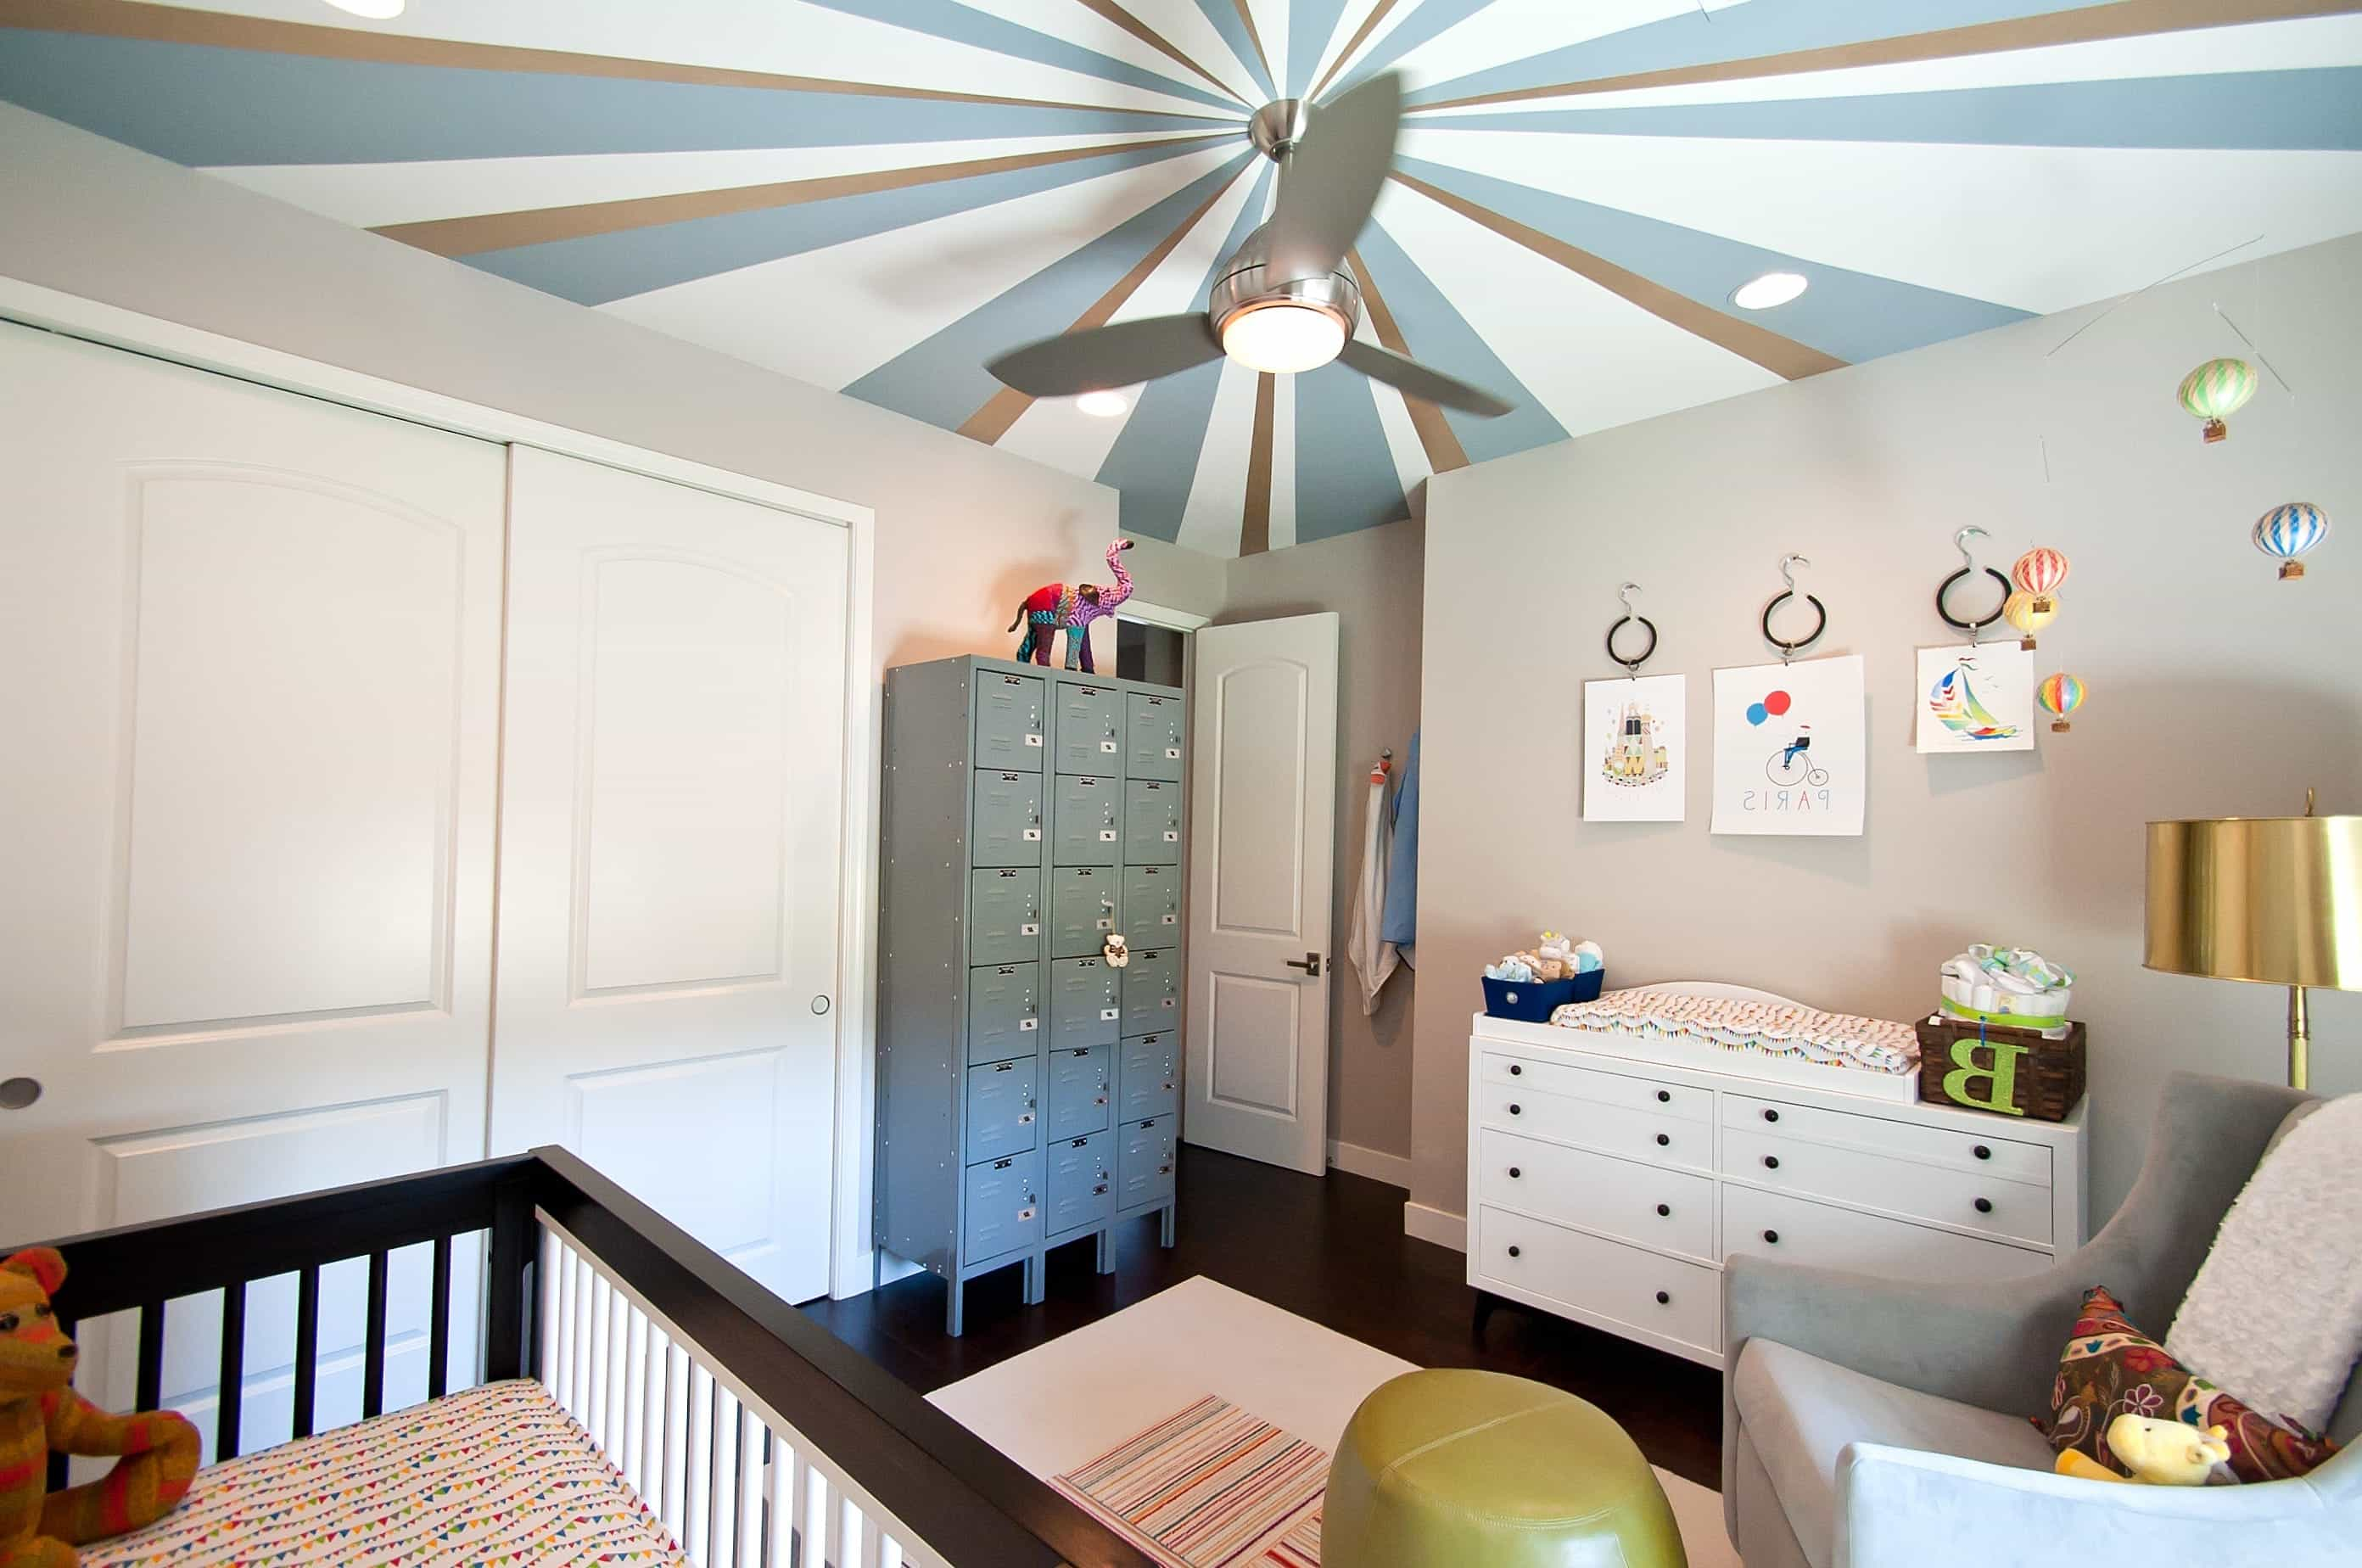 Transitional Nursery With Striking Painted Ceiling (Image 31 of 33)